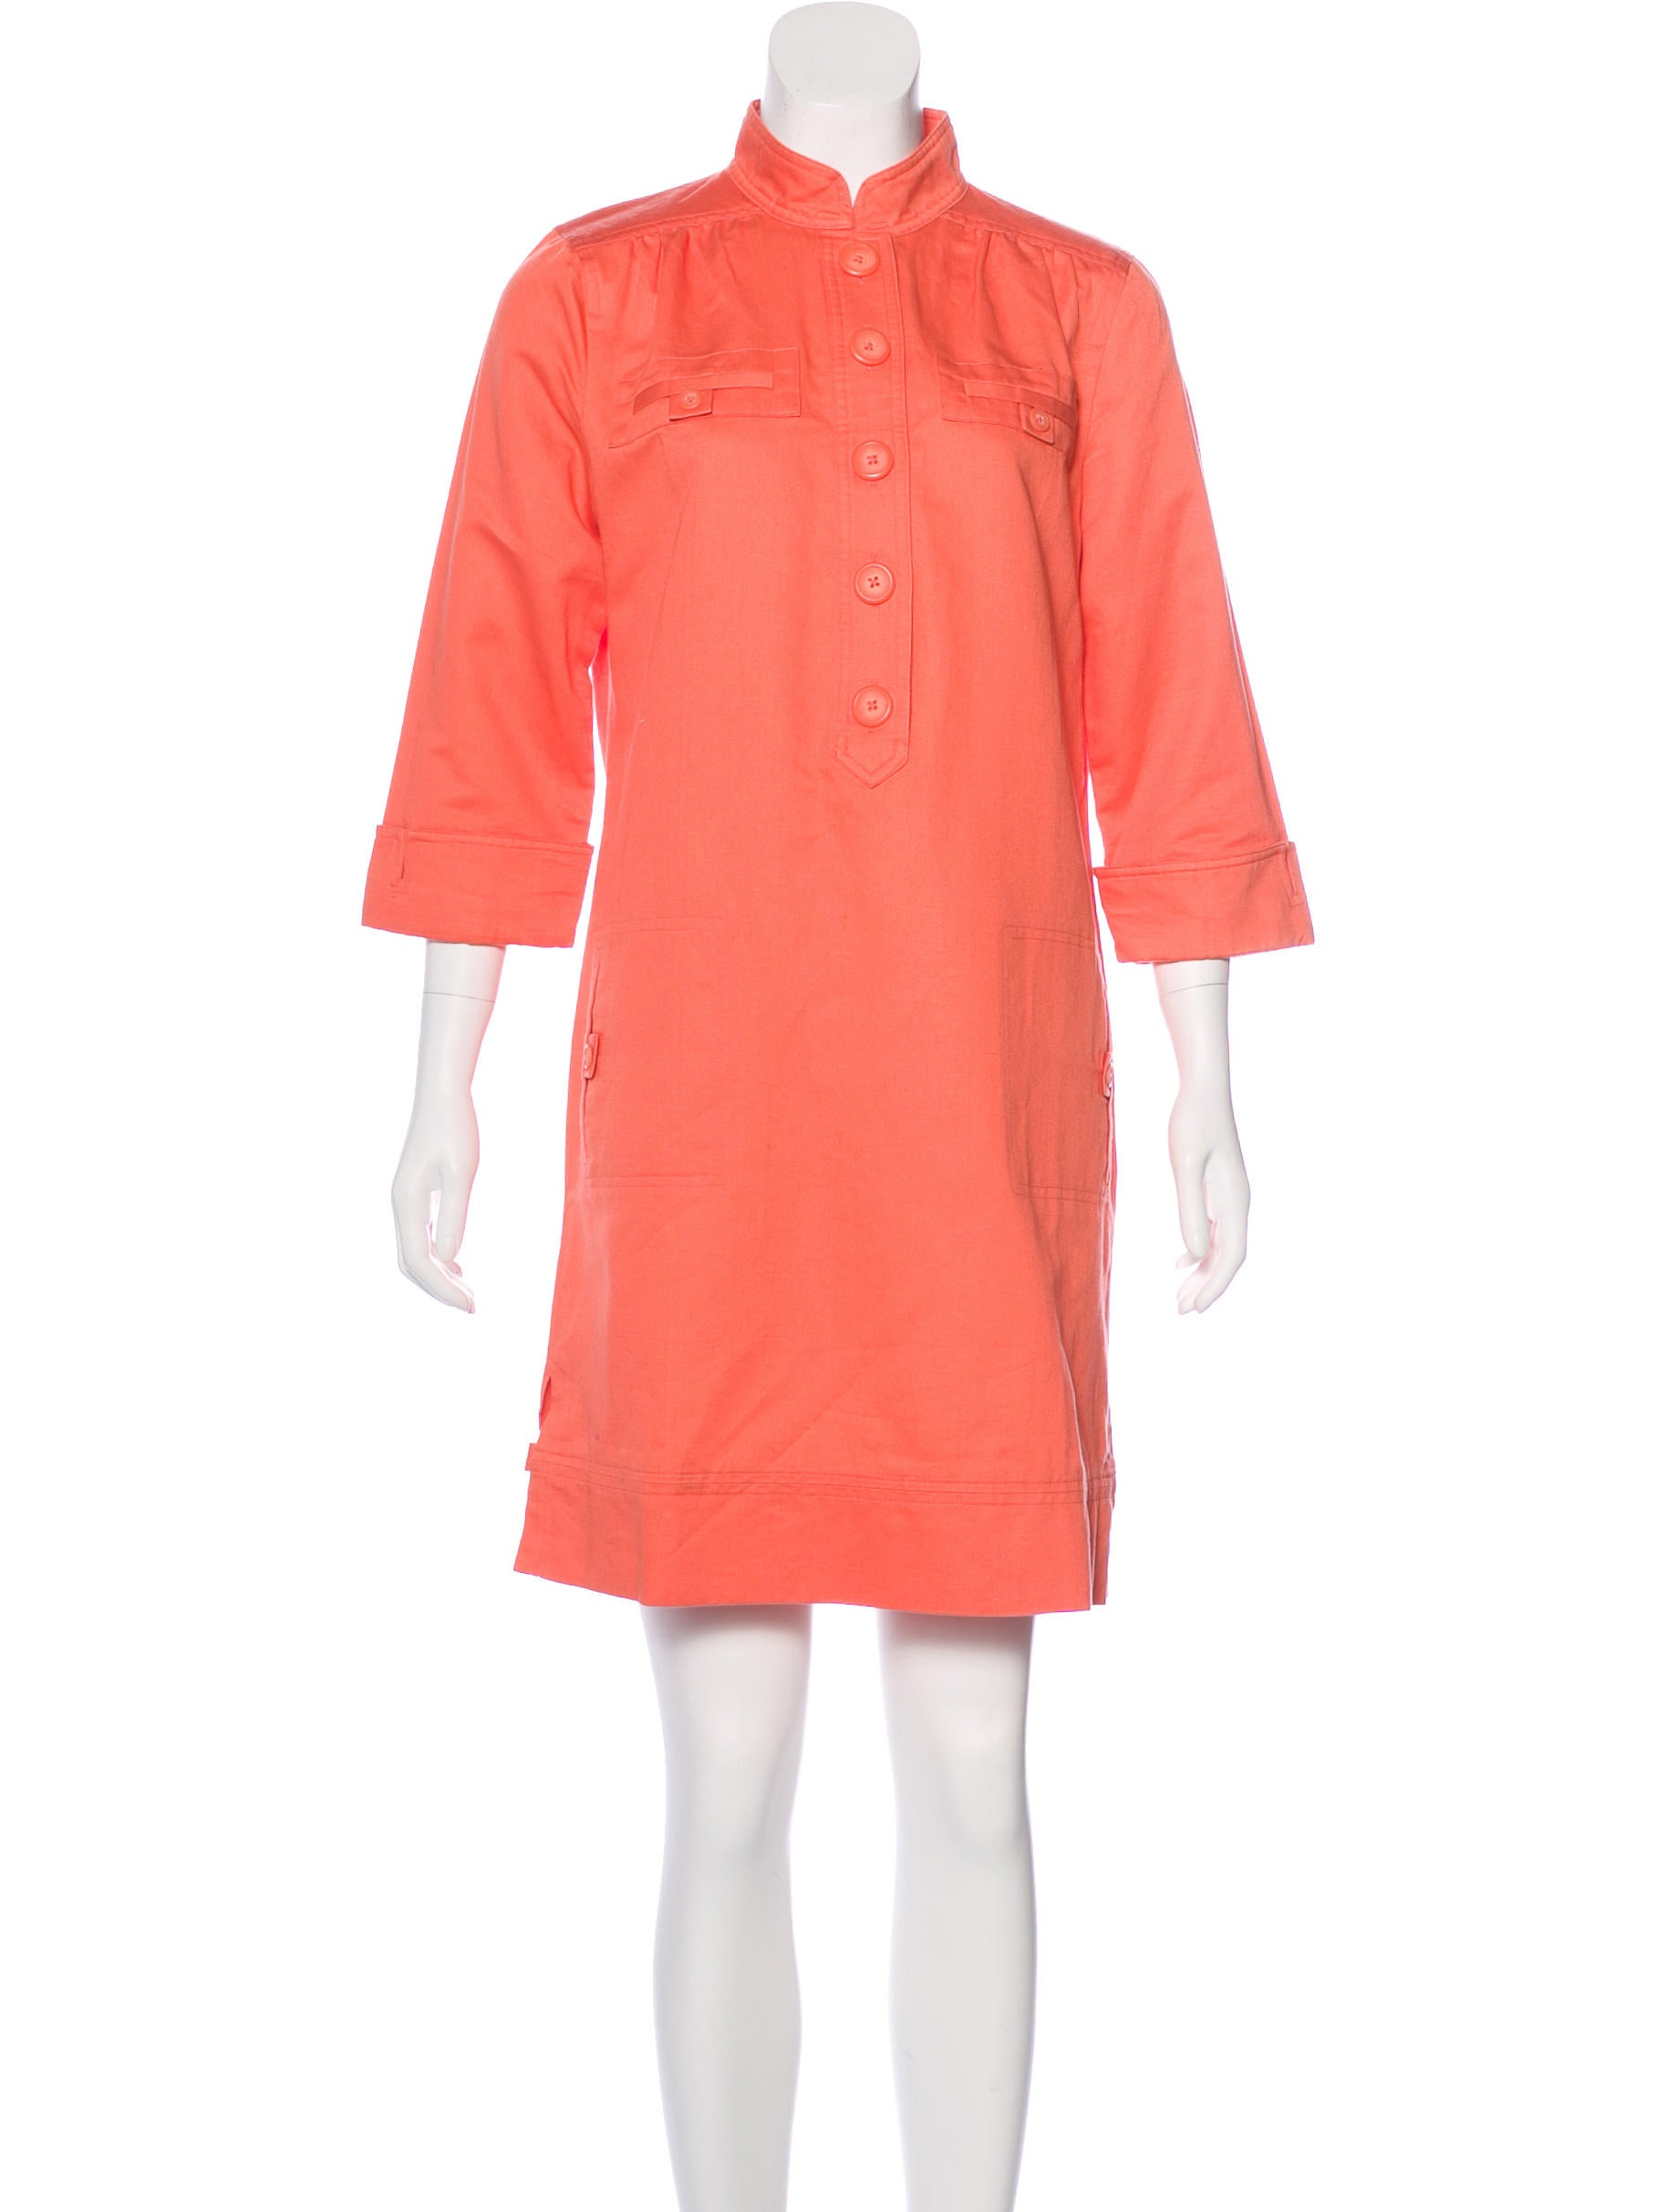 Magaschoni stand collar mini dress clothing wn125050 for Stand collar shirt womens